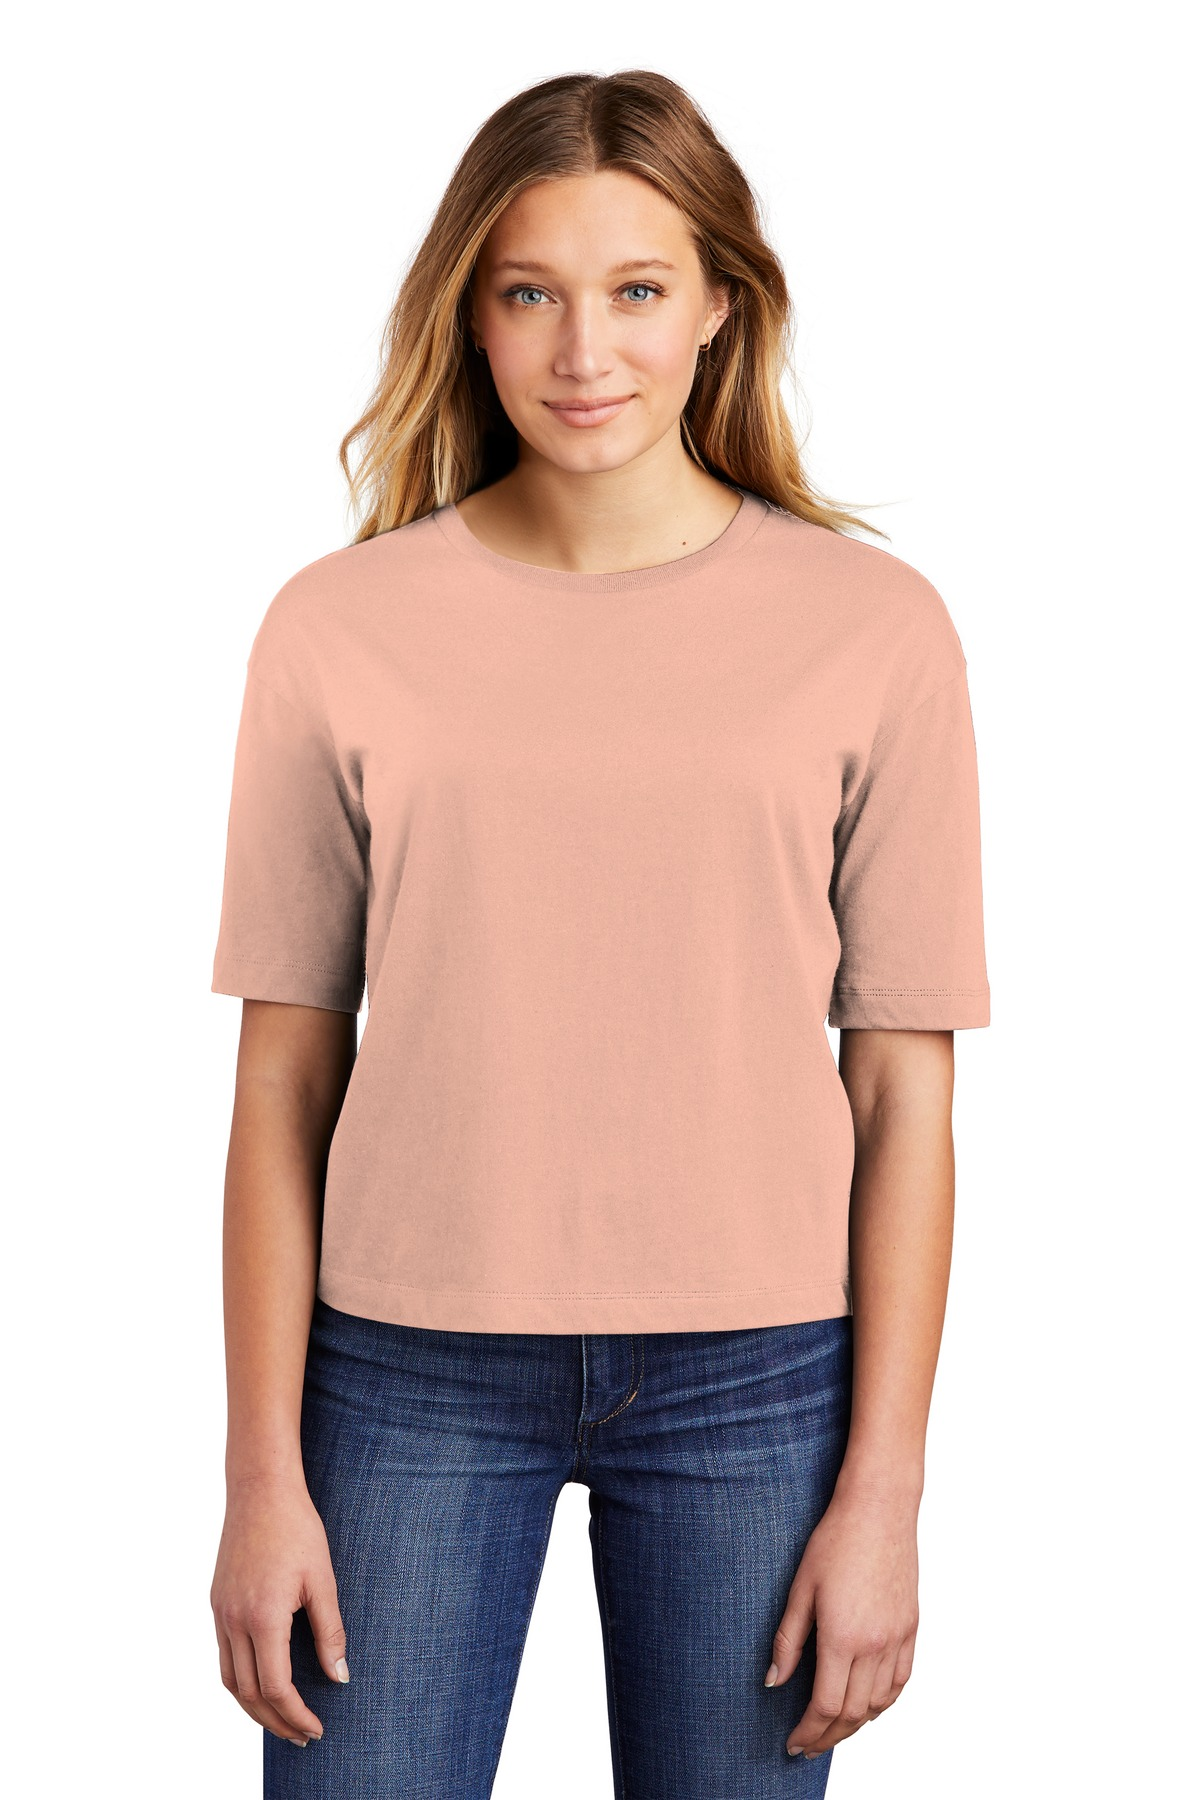 District  ®  Women's V.I.T.  ™  Boxy Tee DT6402 - Dusty Peach